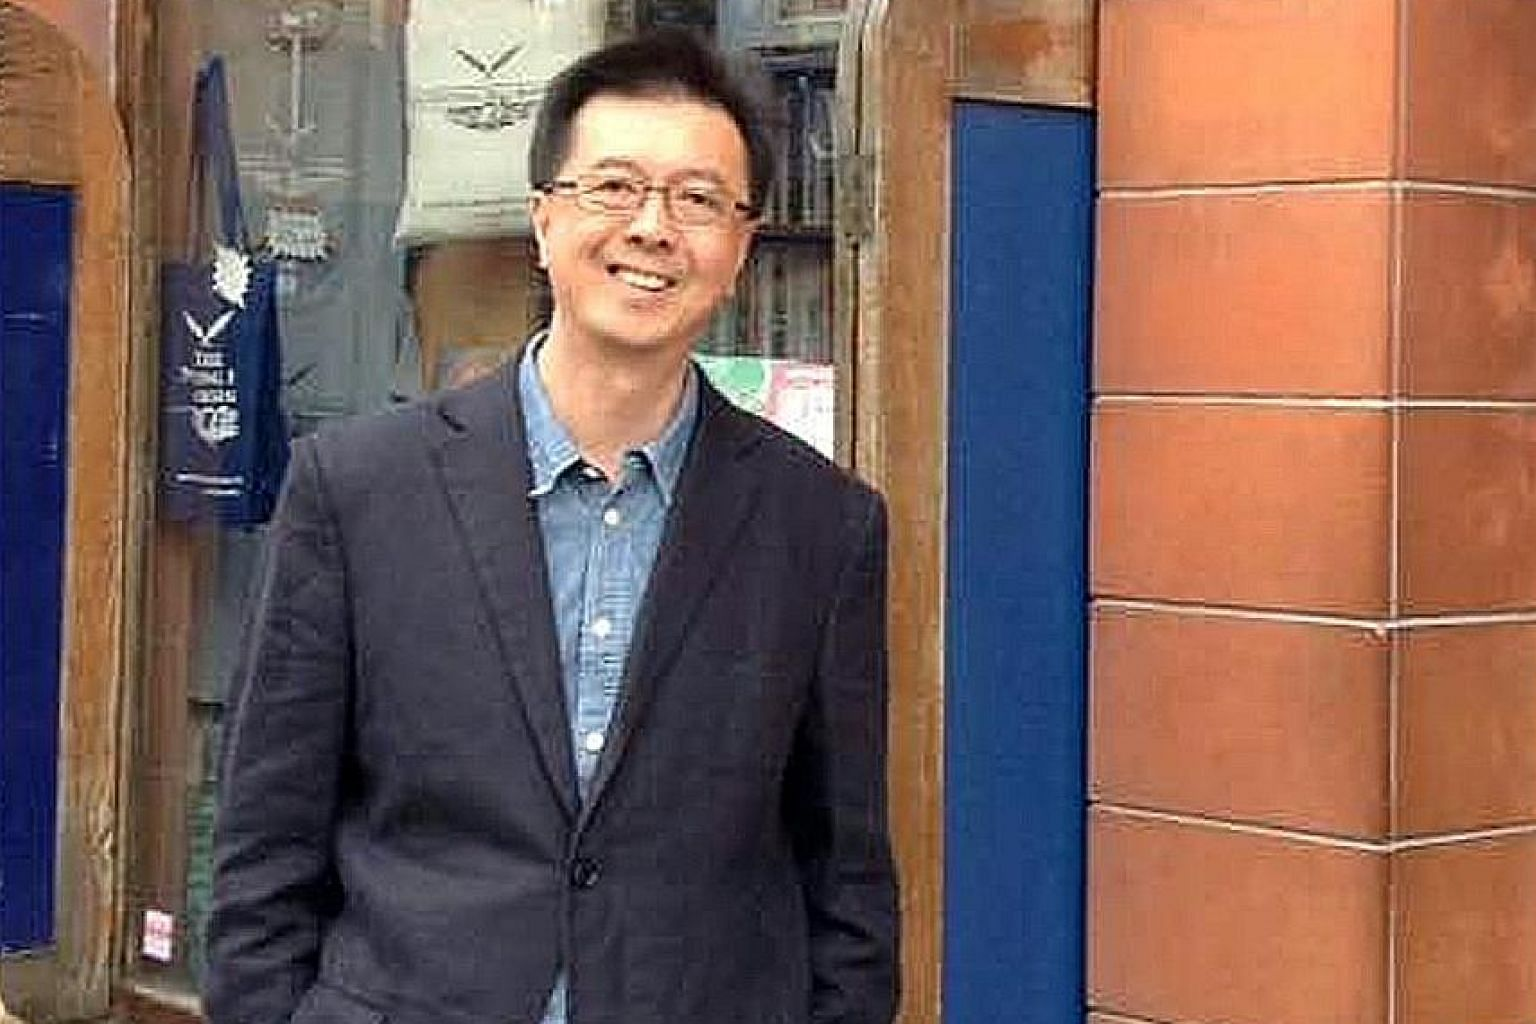 Mr Paul Heng, who began writing to the Forum page in 2004, feels that it provides the man in the street with a platform to share his views, which is important in a country that encourages freedom of expression.